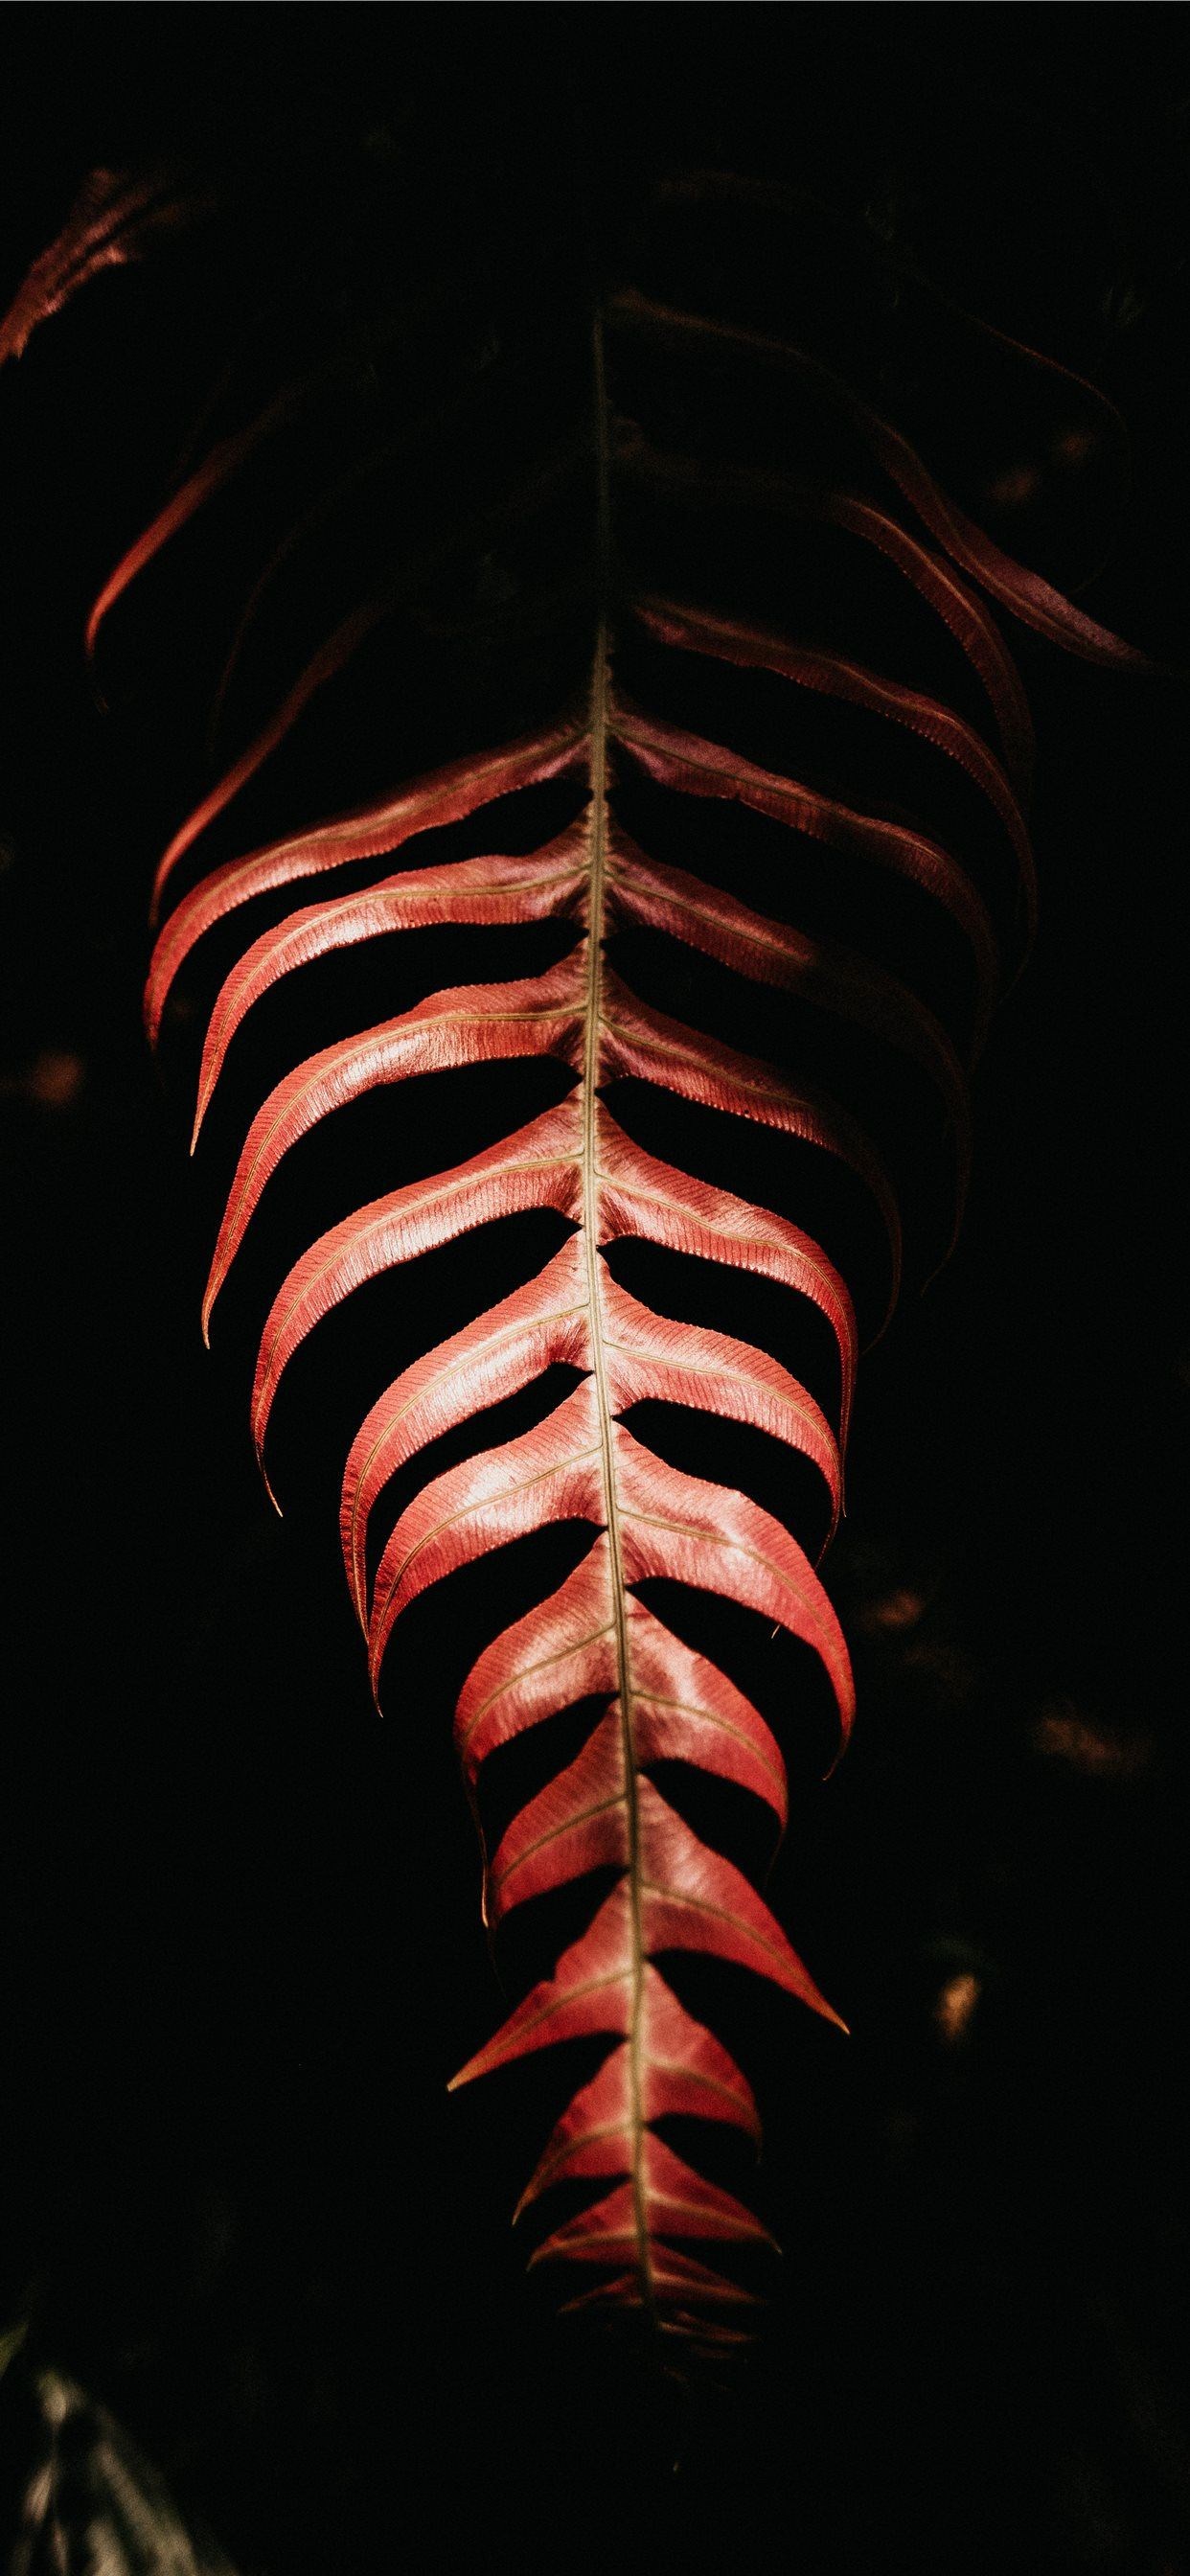 Red Leaf On Black Background Iphone Wallpapers Free Download